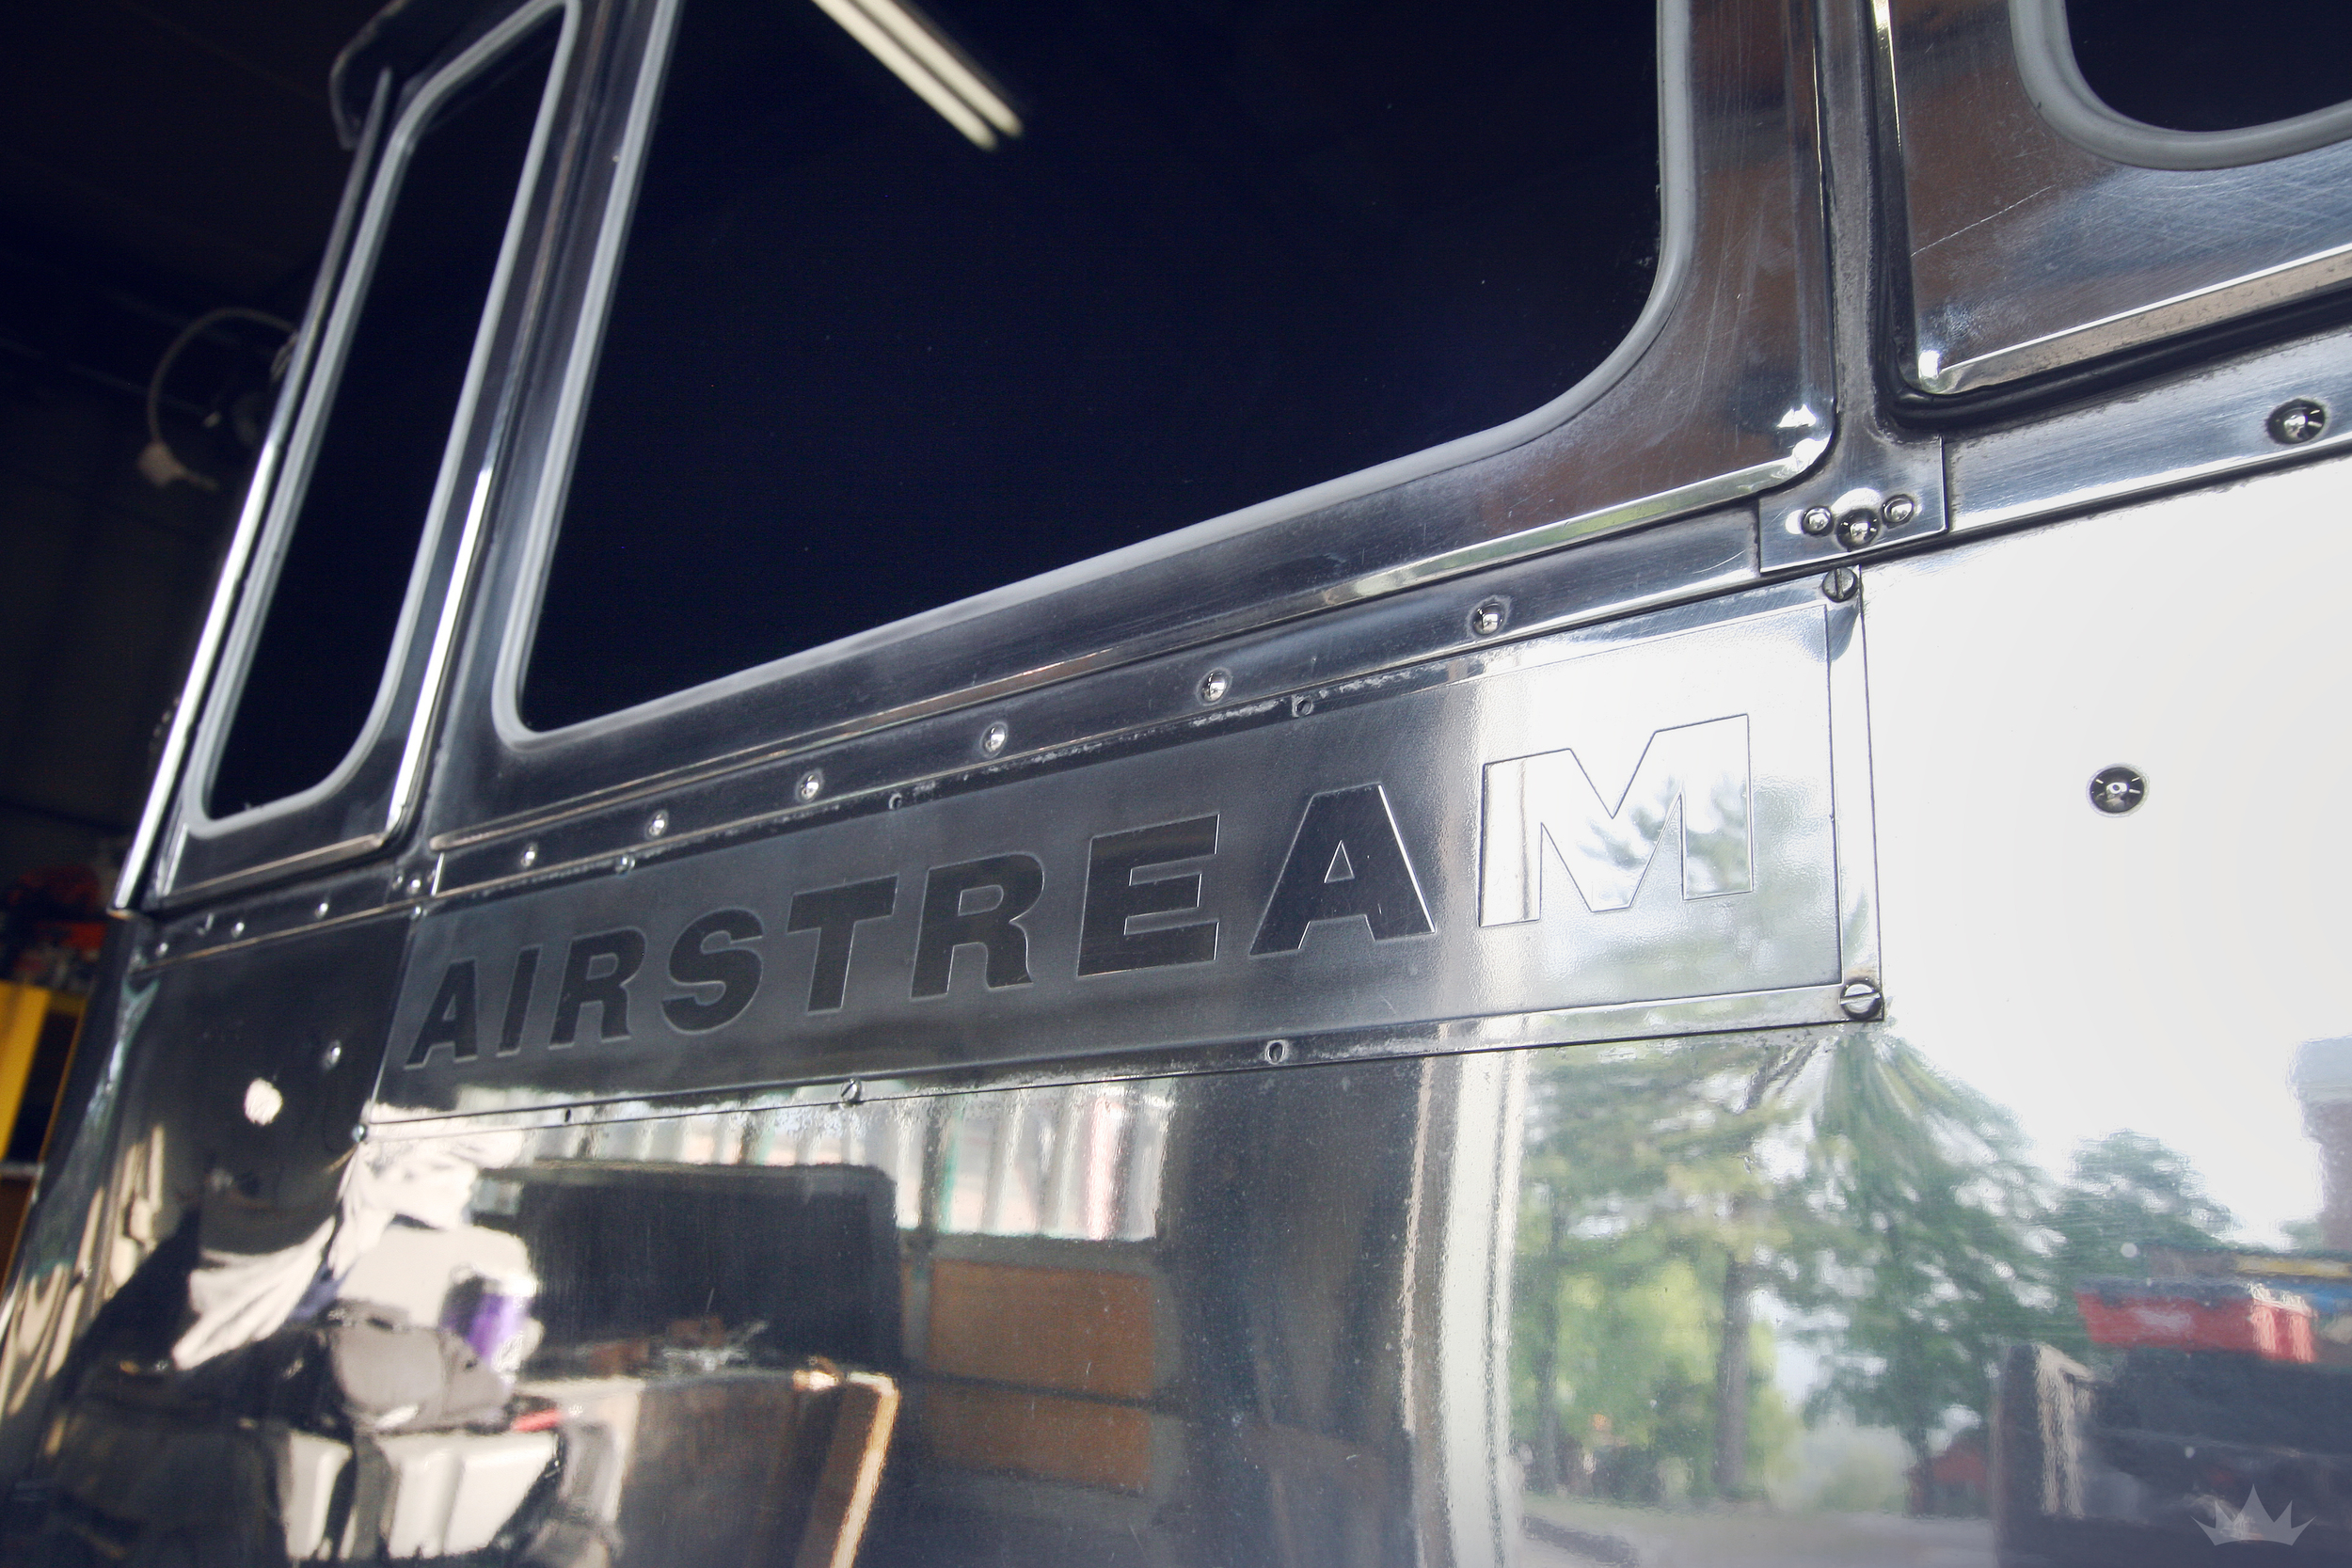 Polished Airstreamplaques add our ESK touch to the exterior. We love details that may be missed at first glance, but add so much to the overall design.